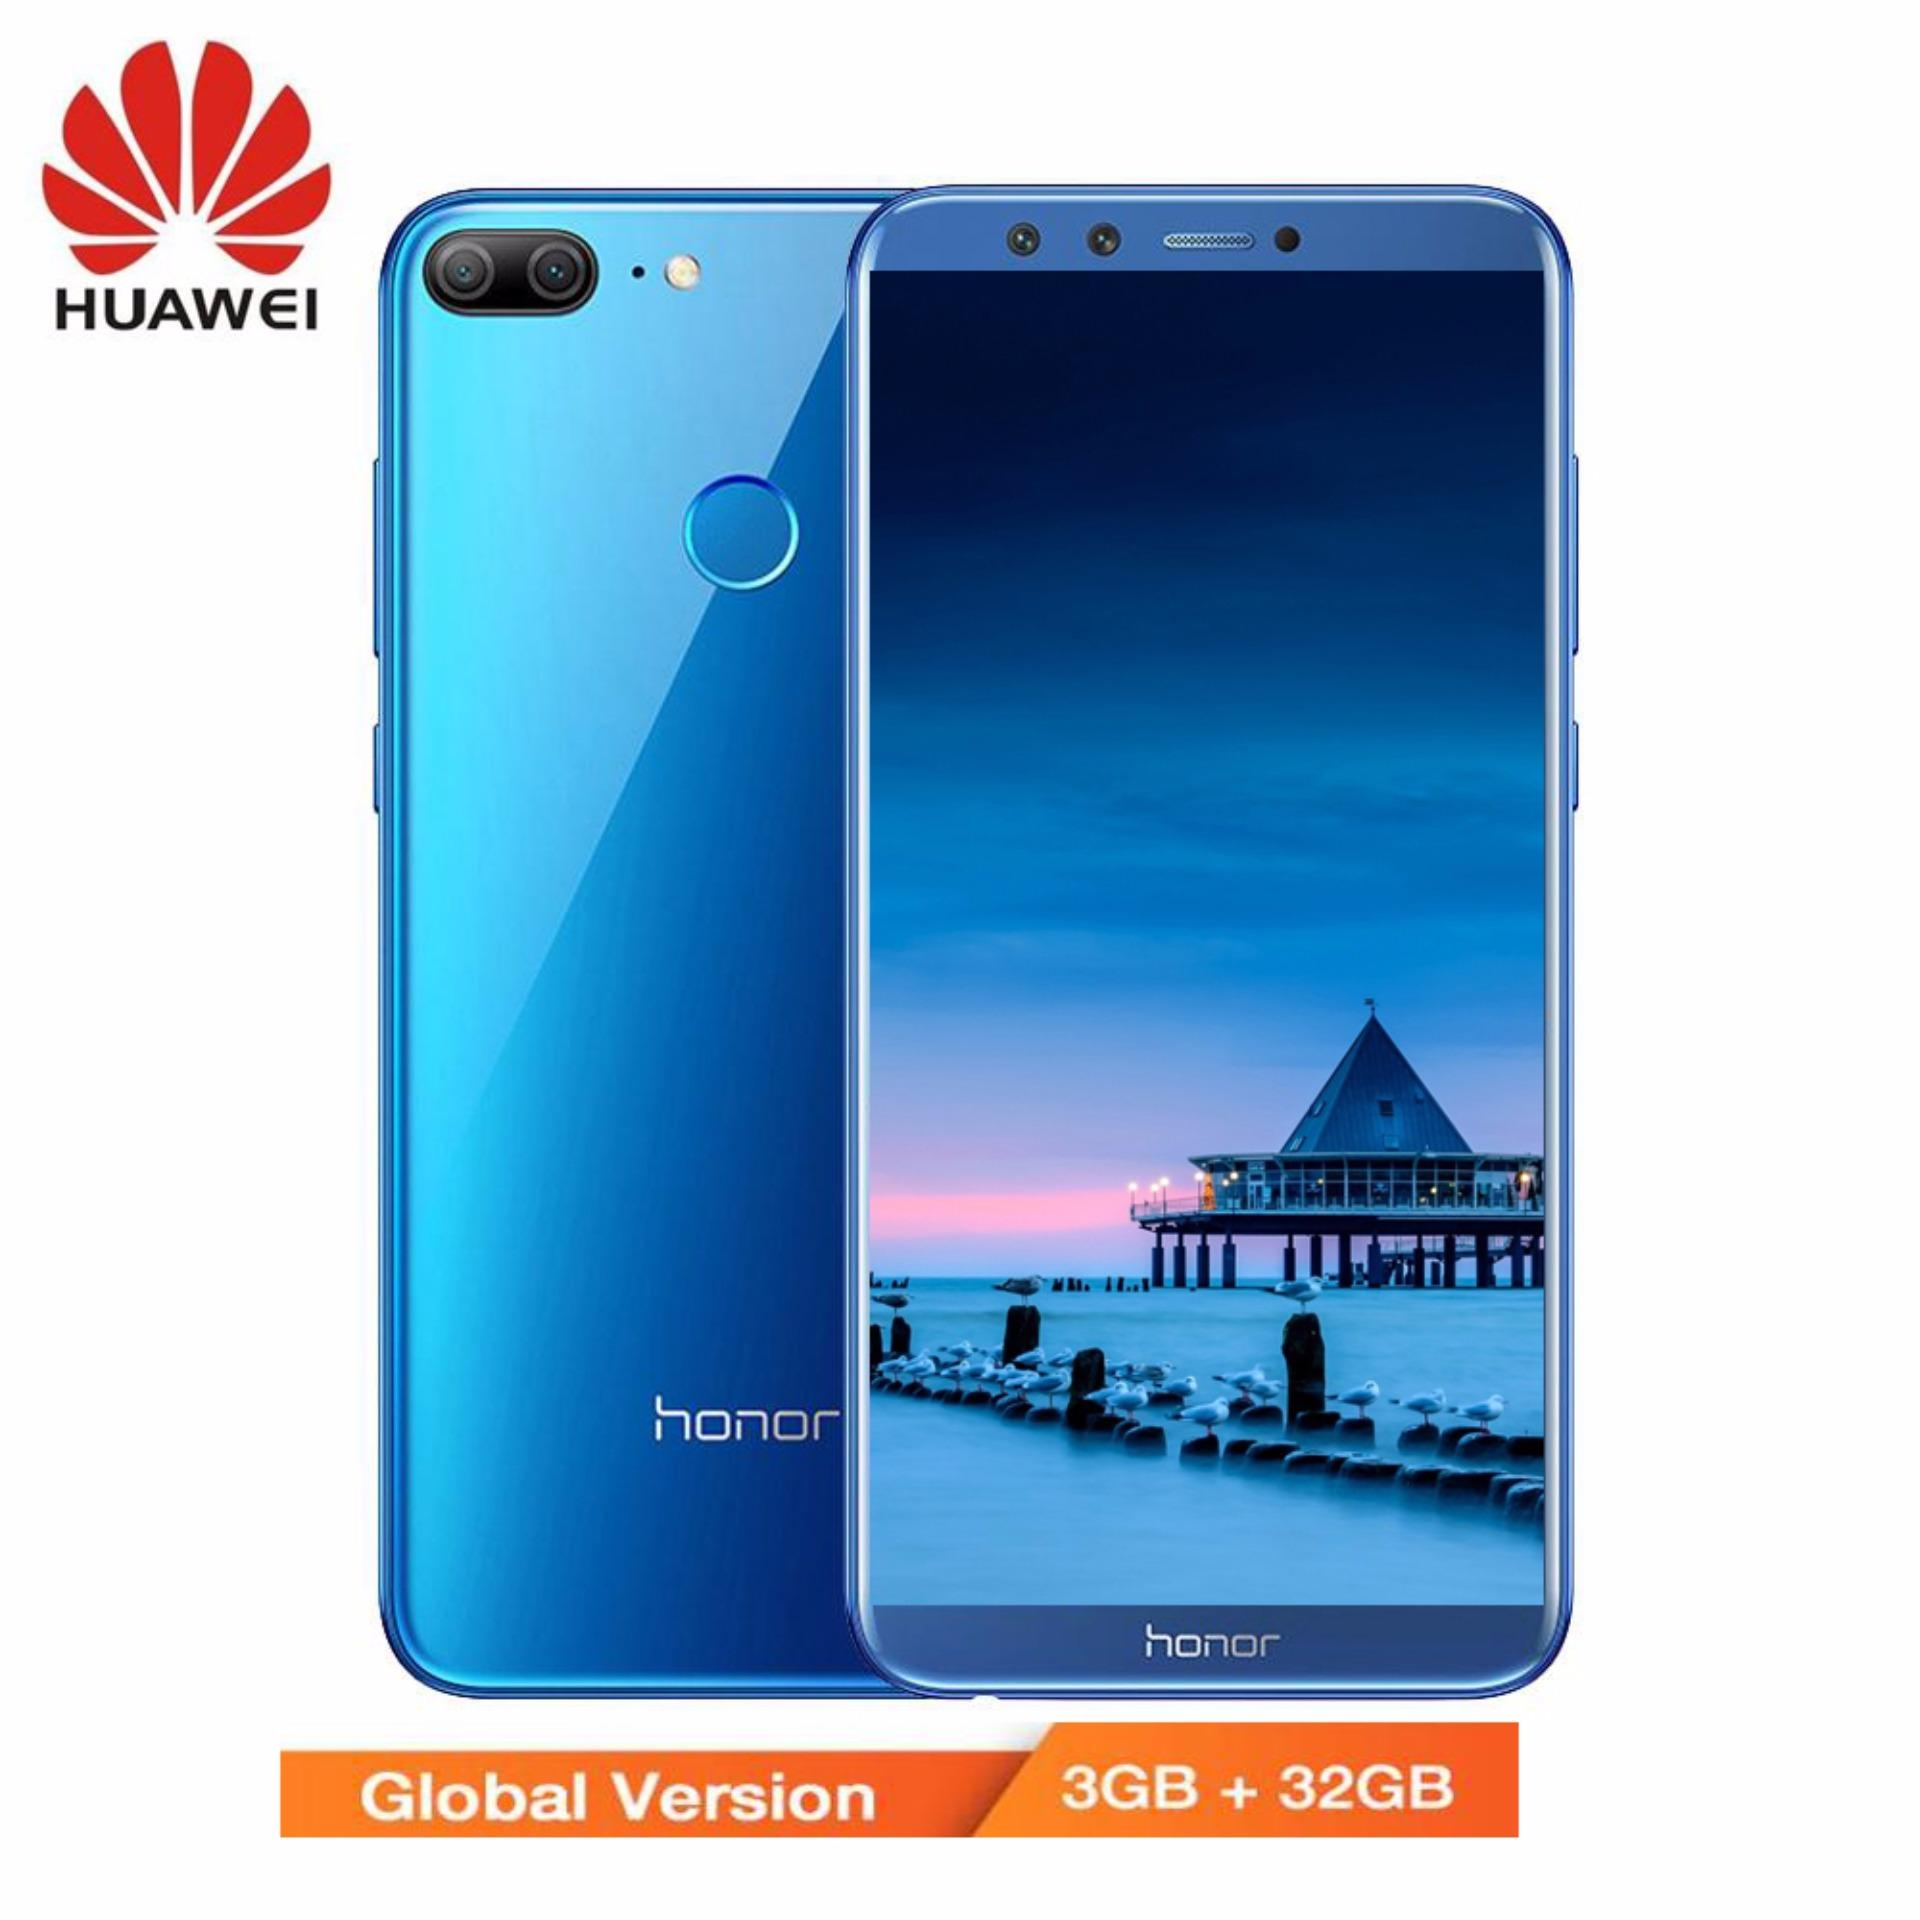 Huawei Philippines Phone For Sale Prices Reviews Lazada Gr5 2gb 16gb Grey Original Global Version Honor